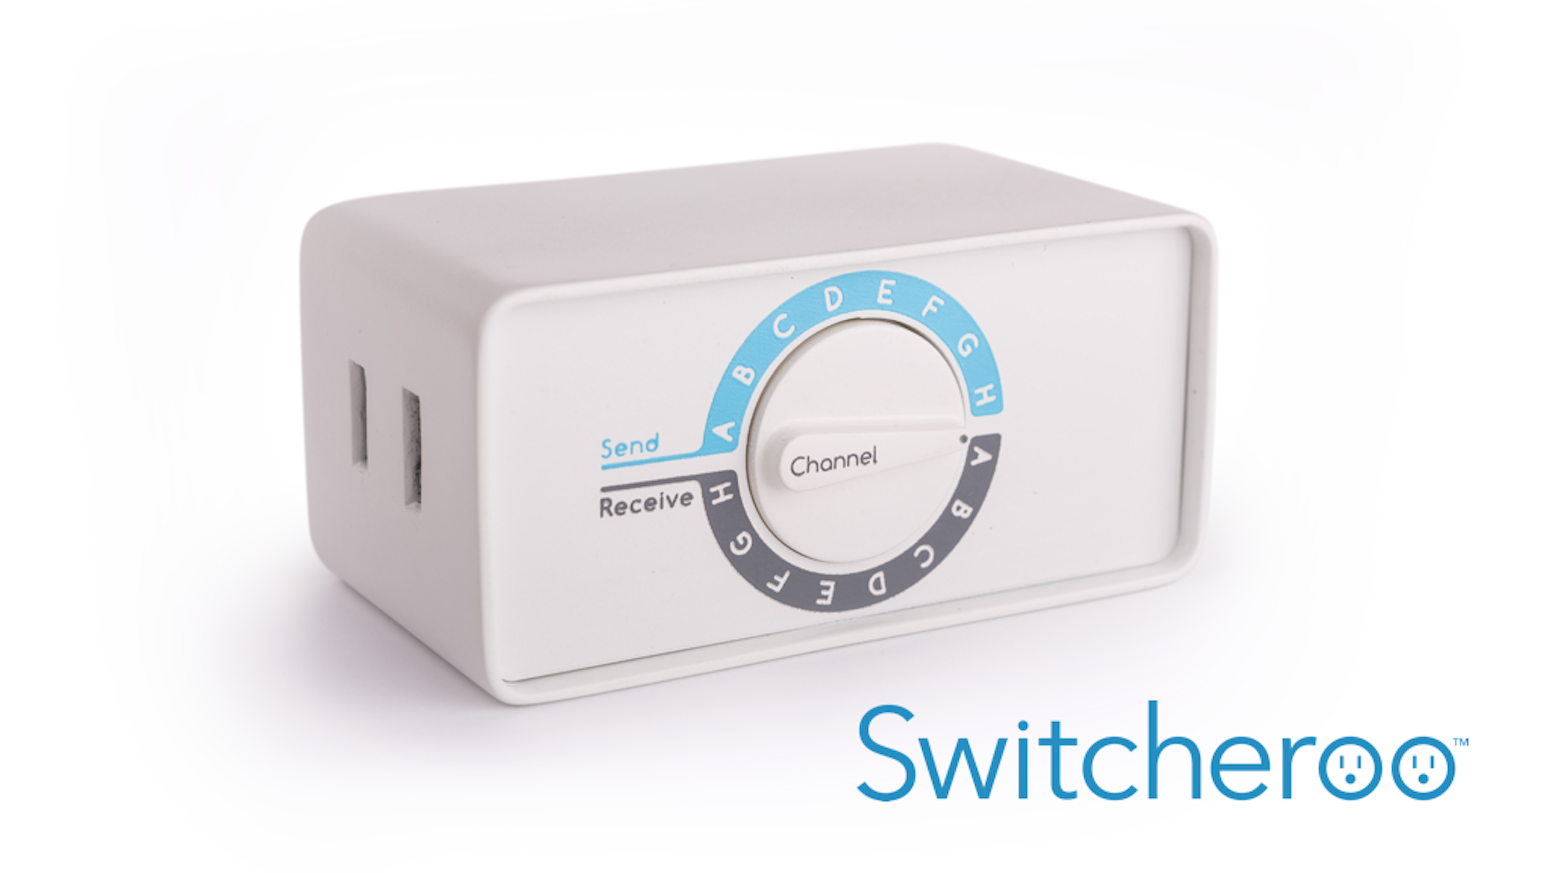 Easily change which outlets in your house are controlled by your existing switches without WiFi or a smartphone app.